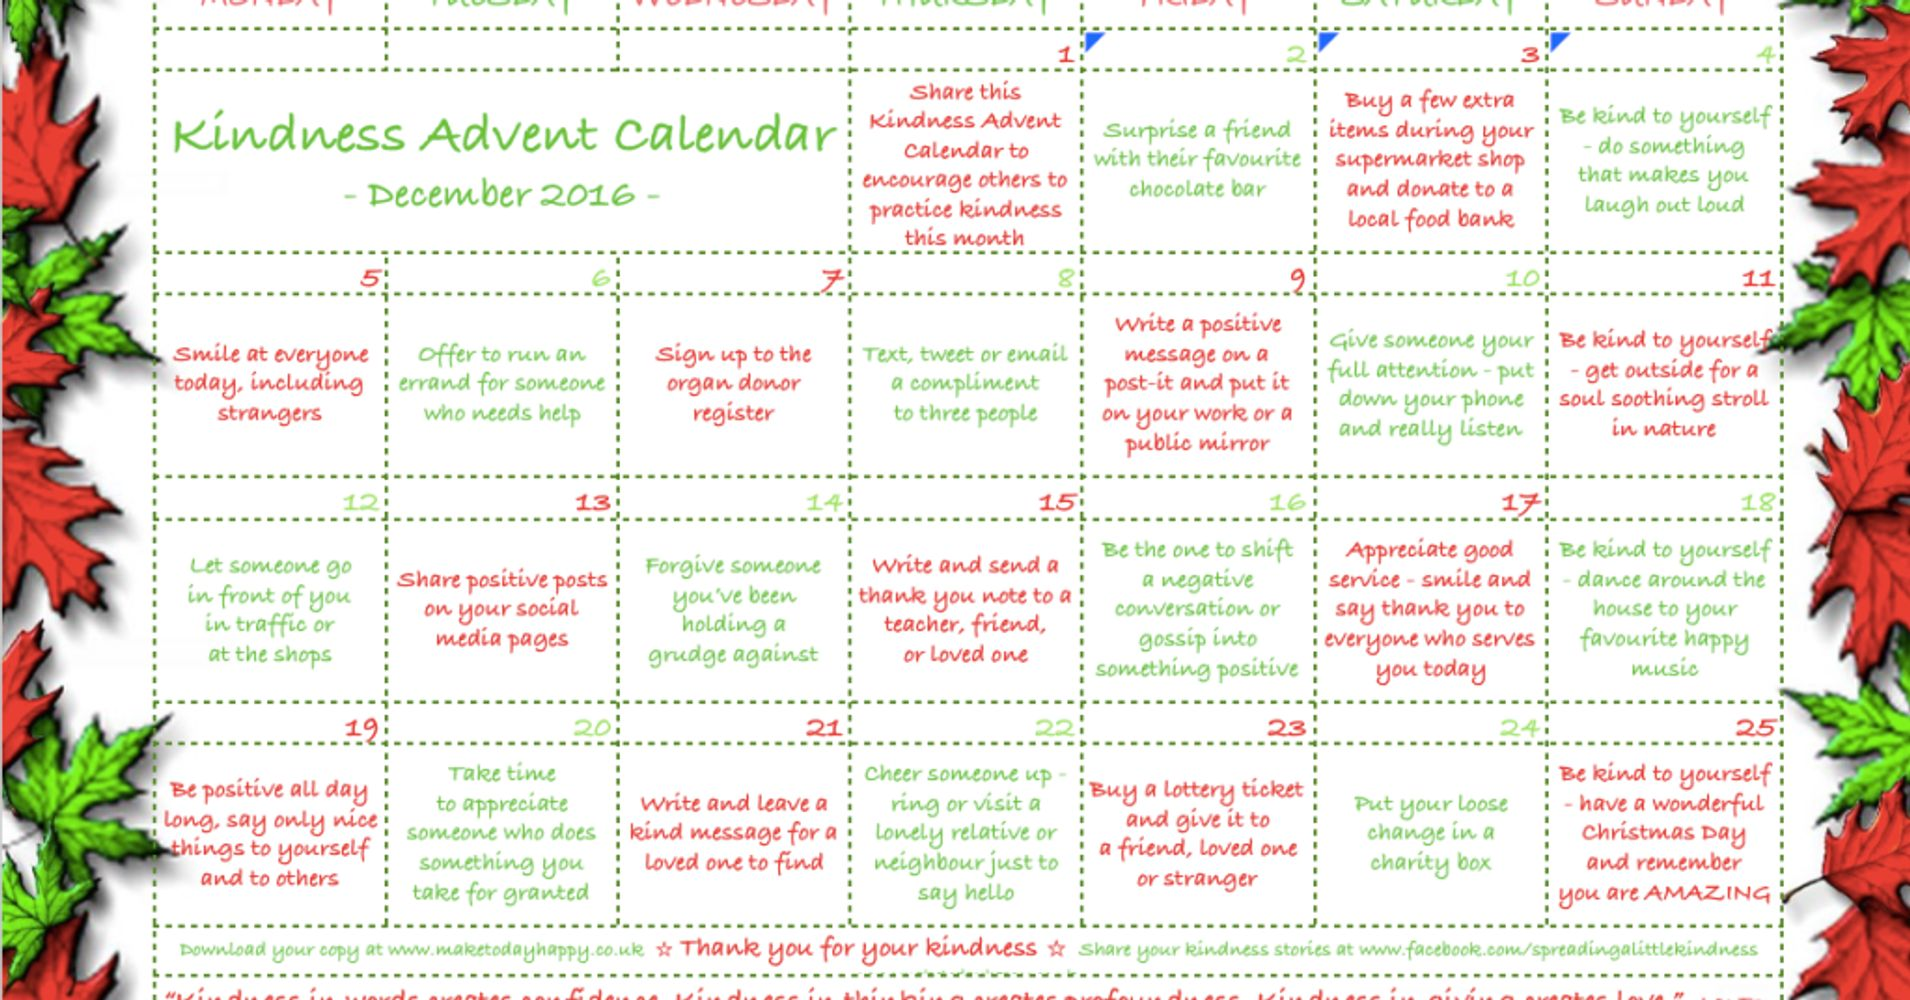 The kindness advent calendar huffpost solutioingenieria Gallery